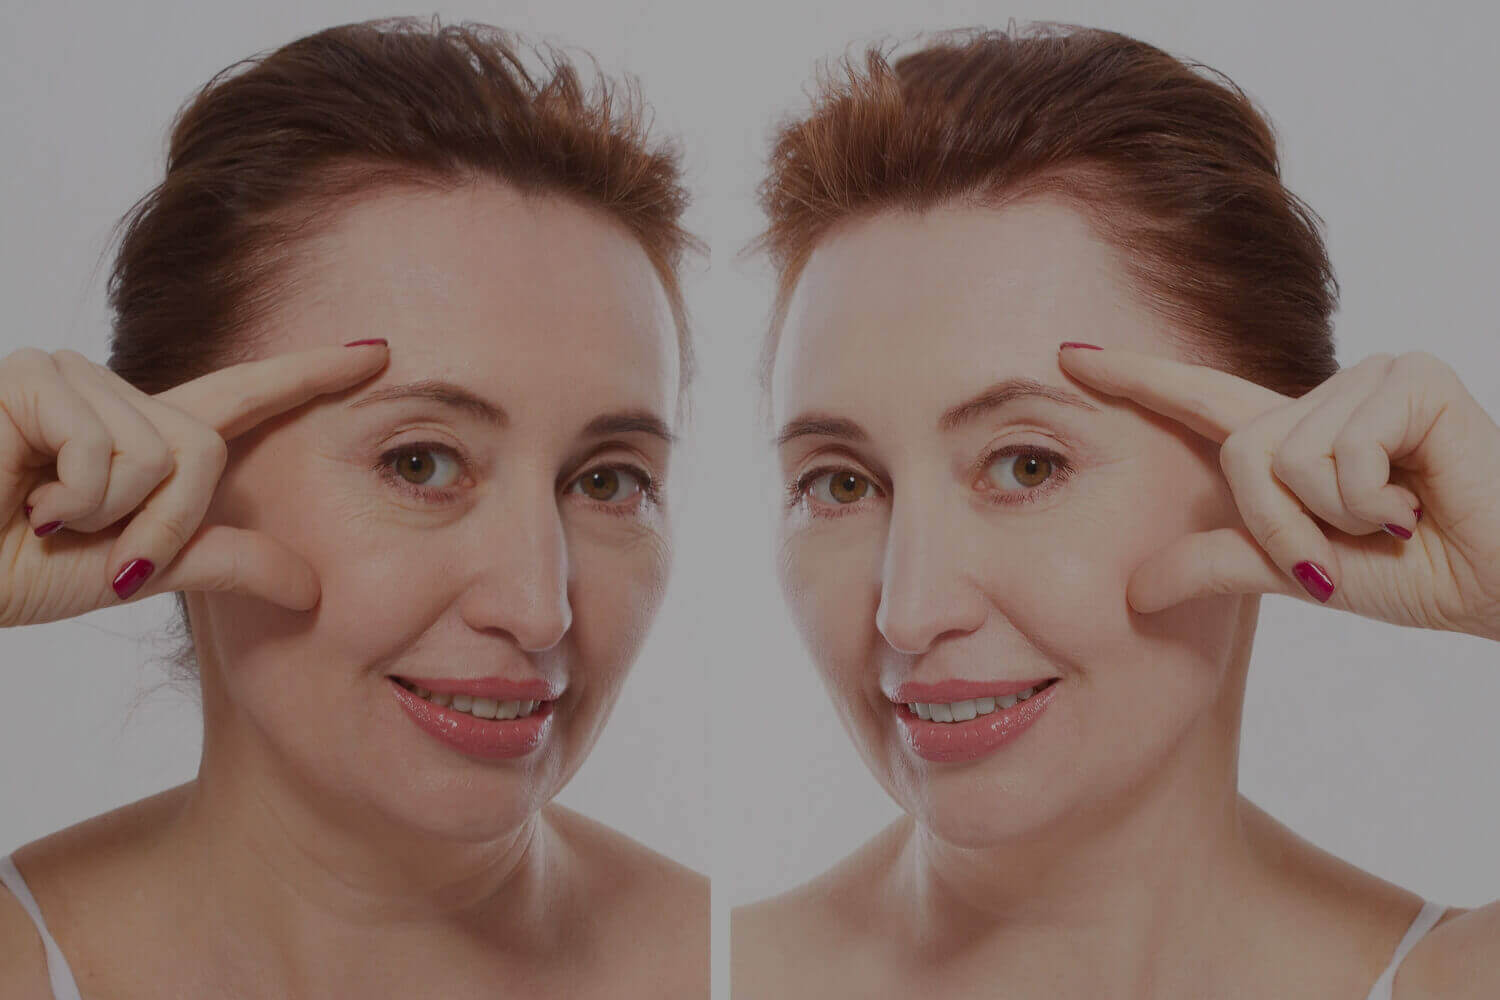 Facelift operations